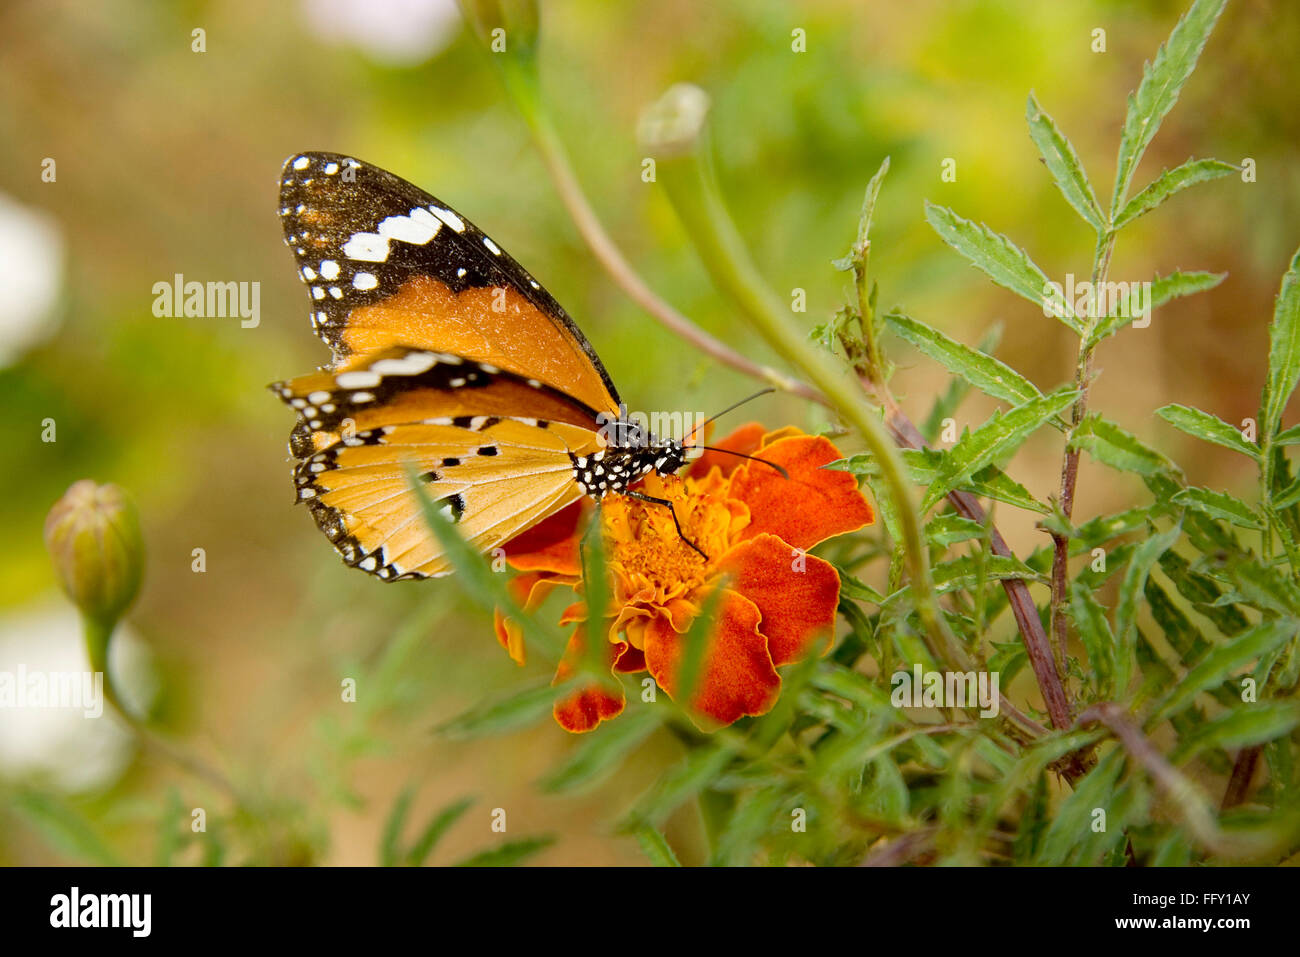 Insect , Plain Tiger Danaus chrysippus butterfly sucking nectar from flower - Stock Image